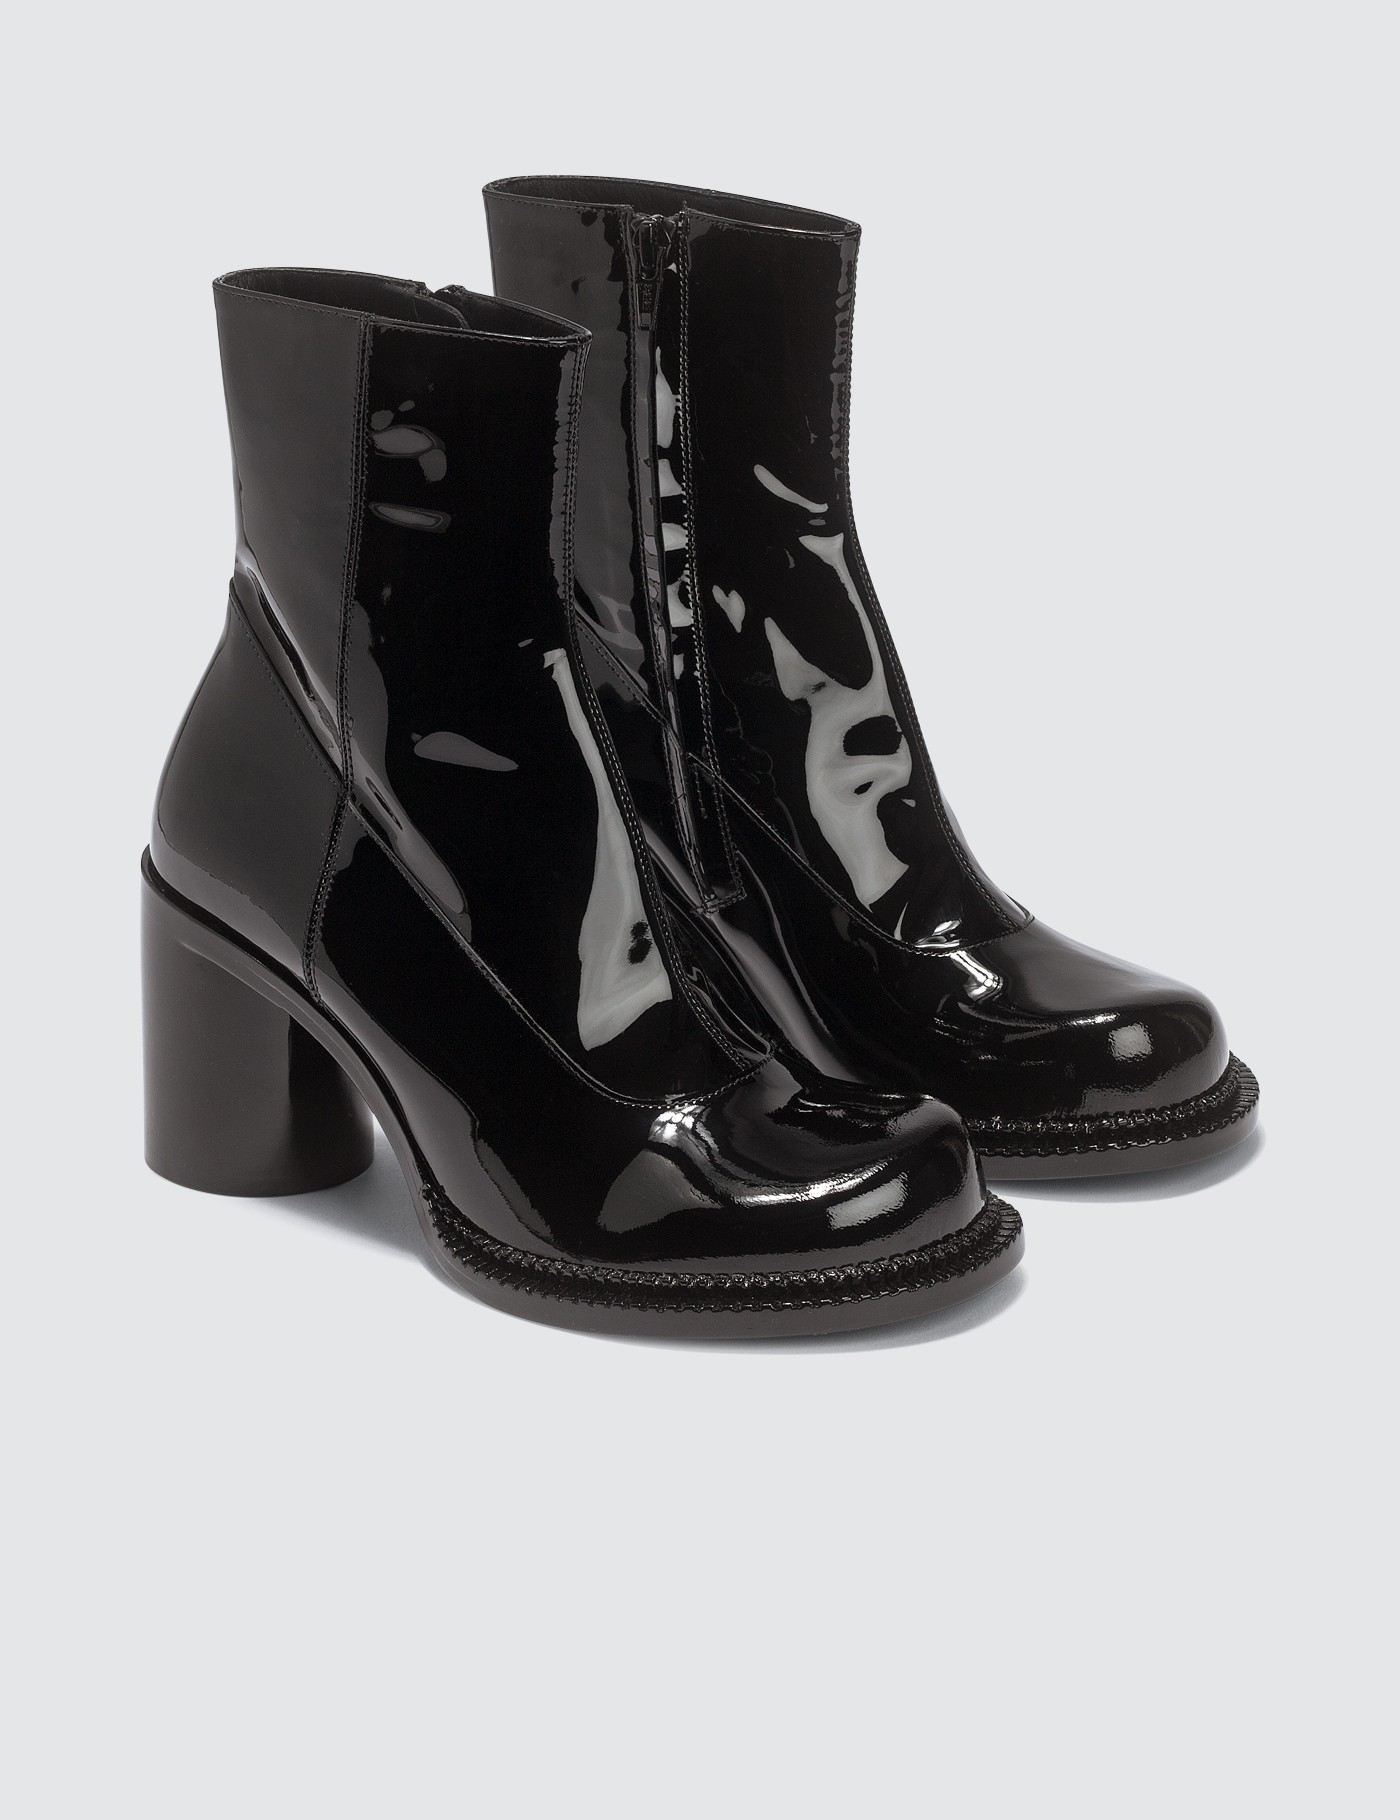 good 2019 discount sale select for newest Ankle Patent Leather Boots, Maison Margiela